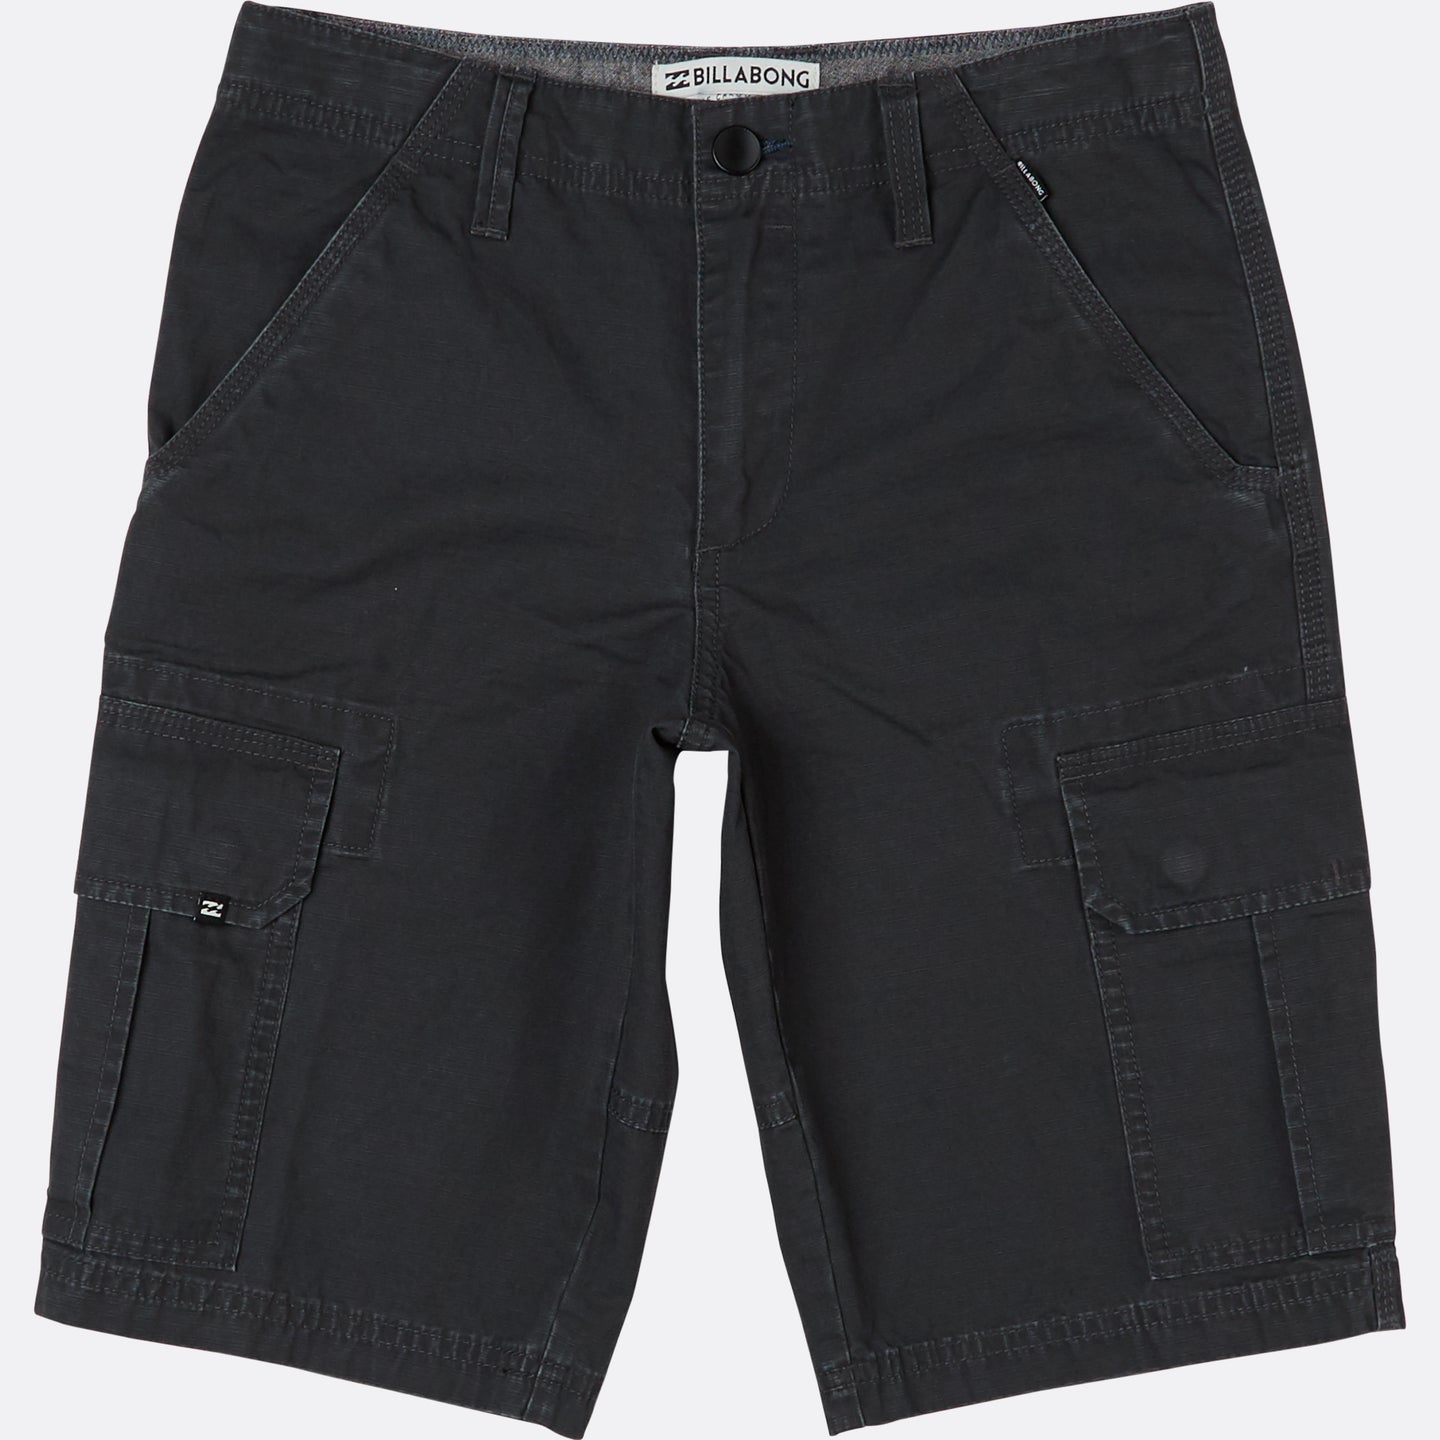 Billabong Scheme Cargo Walkshort